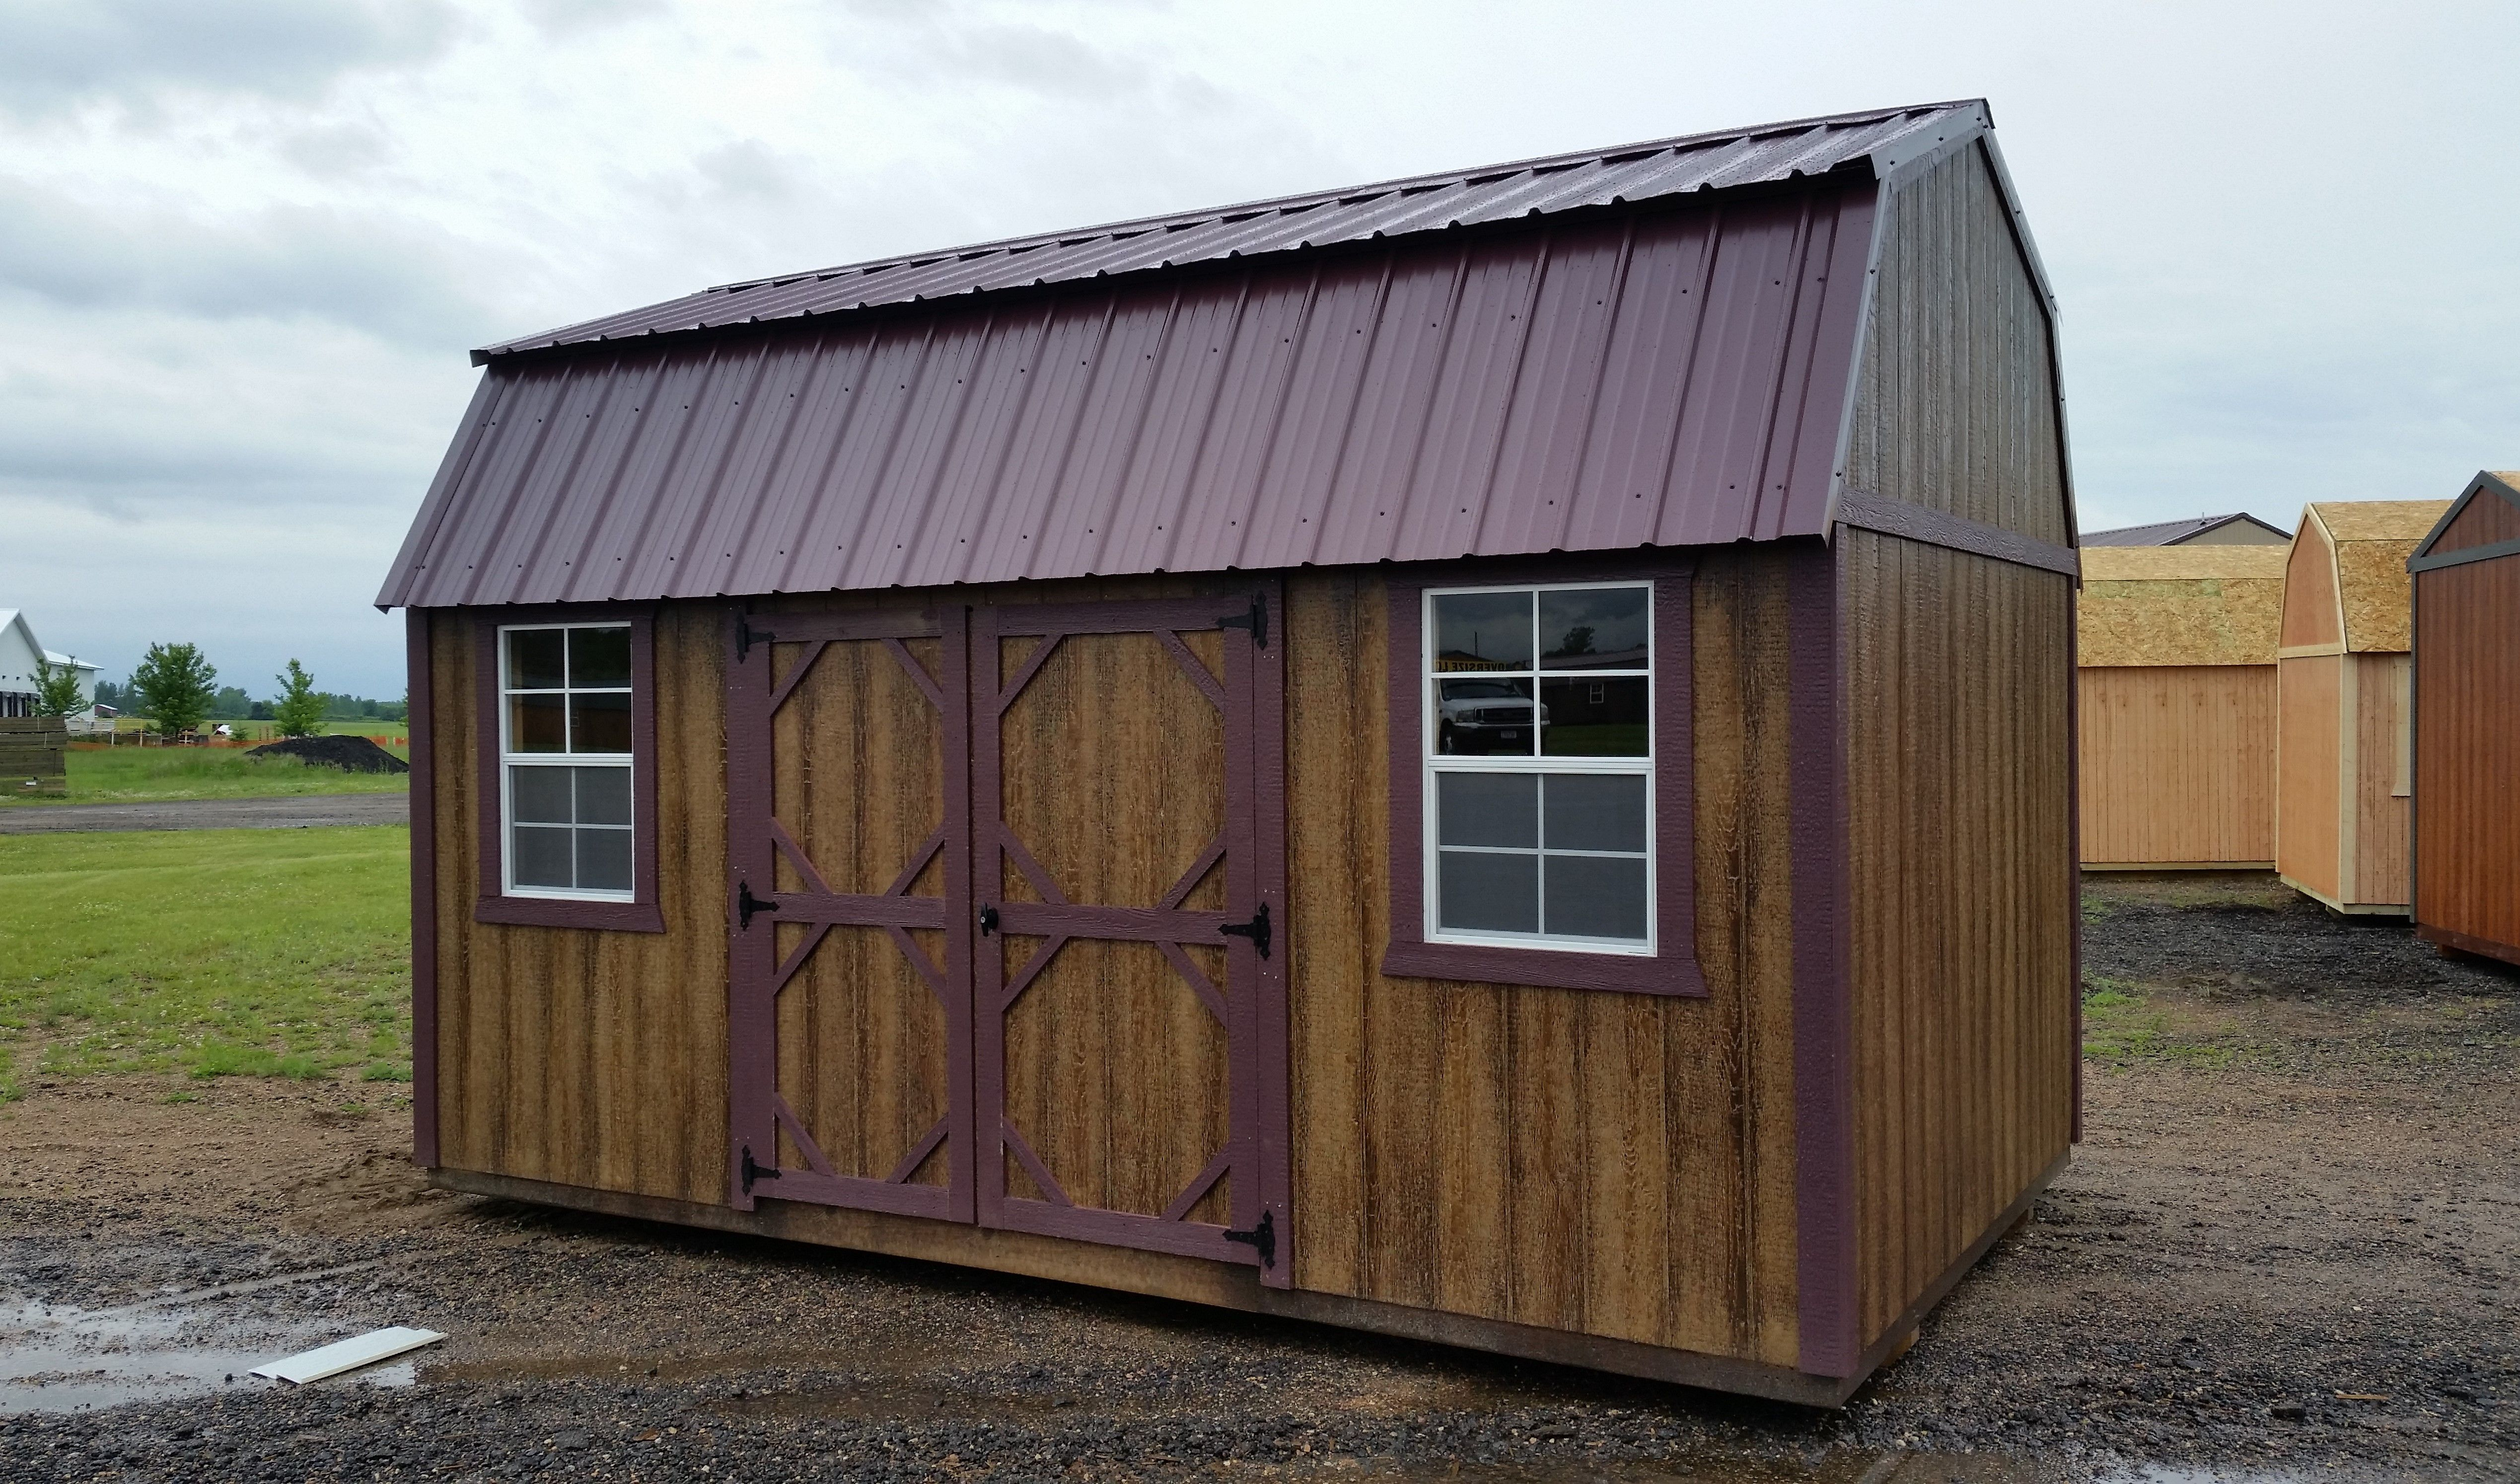 Grandview Buildings 10x16 Side Lofted Barn Burgandy Metal Roof With Matching Trim Lp Smartside Siding With Haley Chestn Portable Sheds Metal Roof Bank Barn